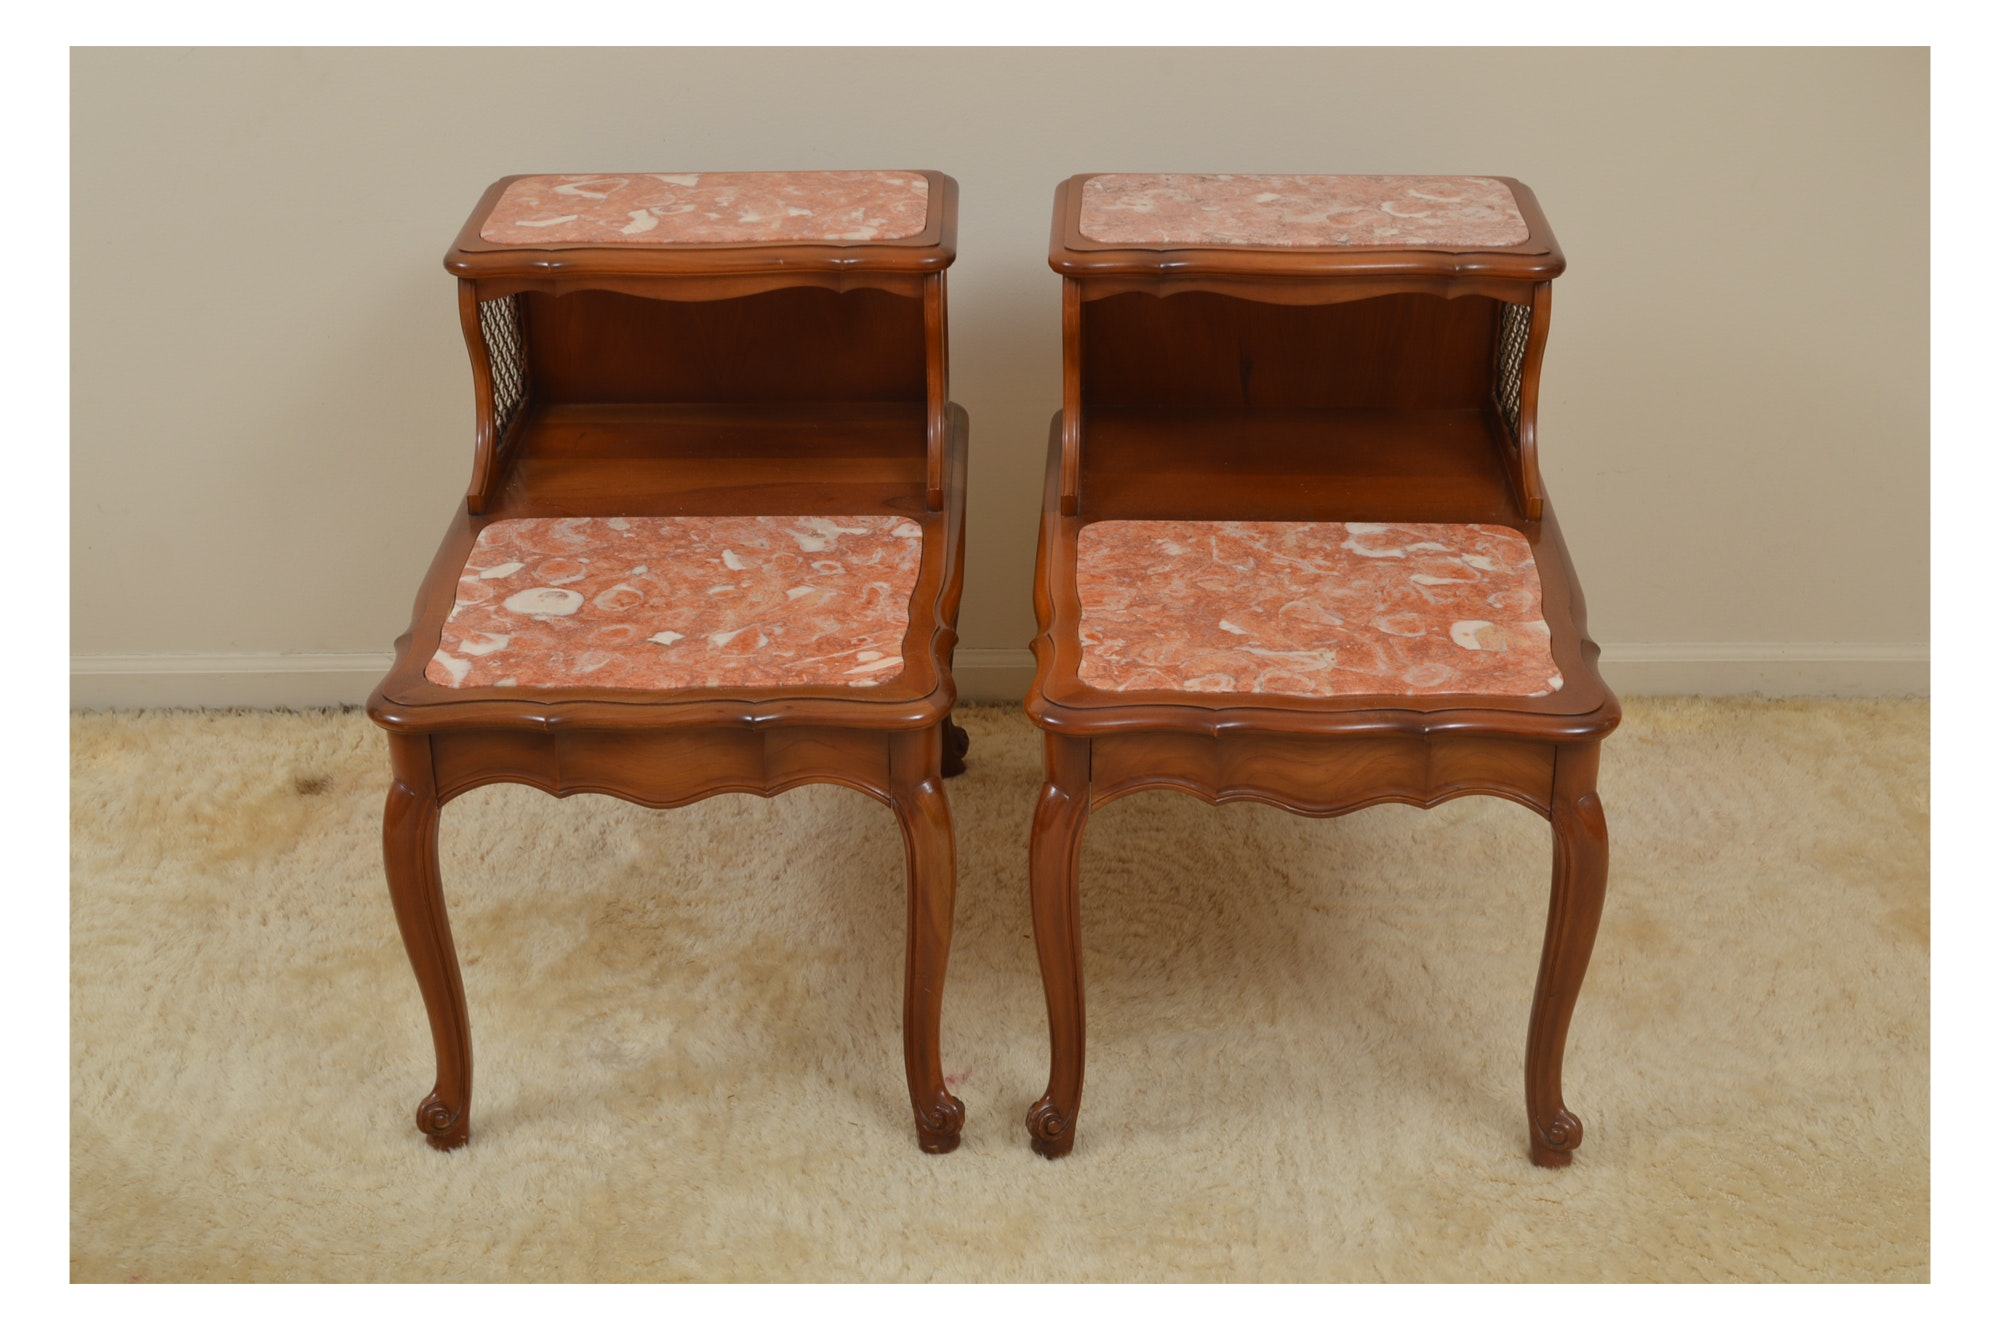 Pair of Pink Marble-Topped Step Tables